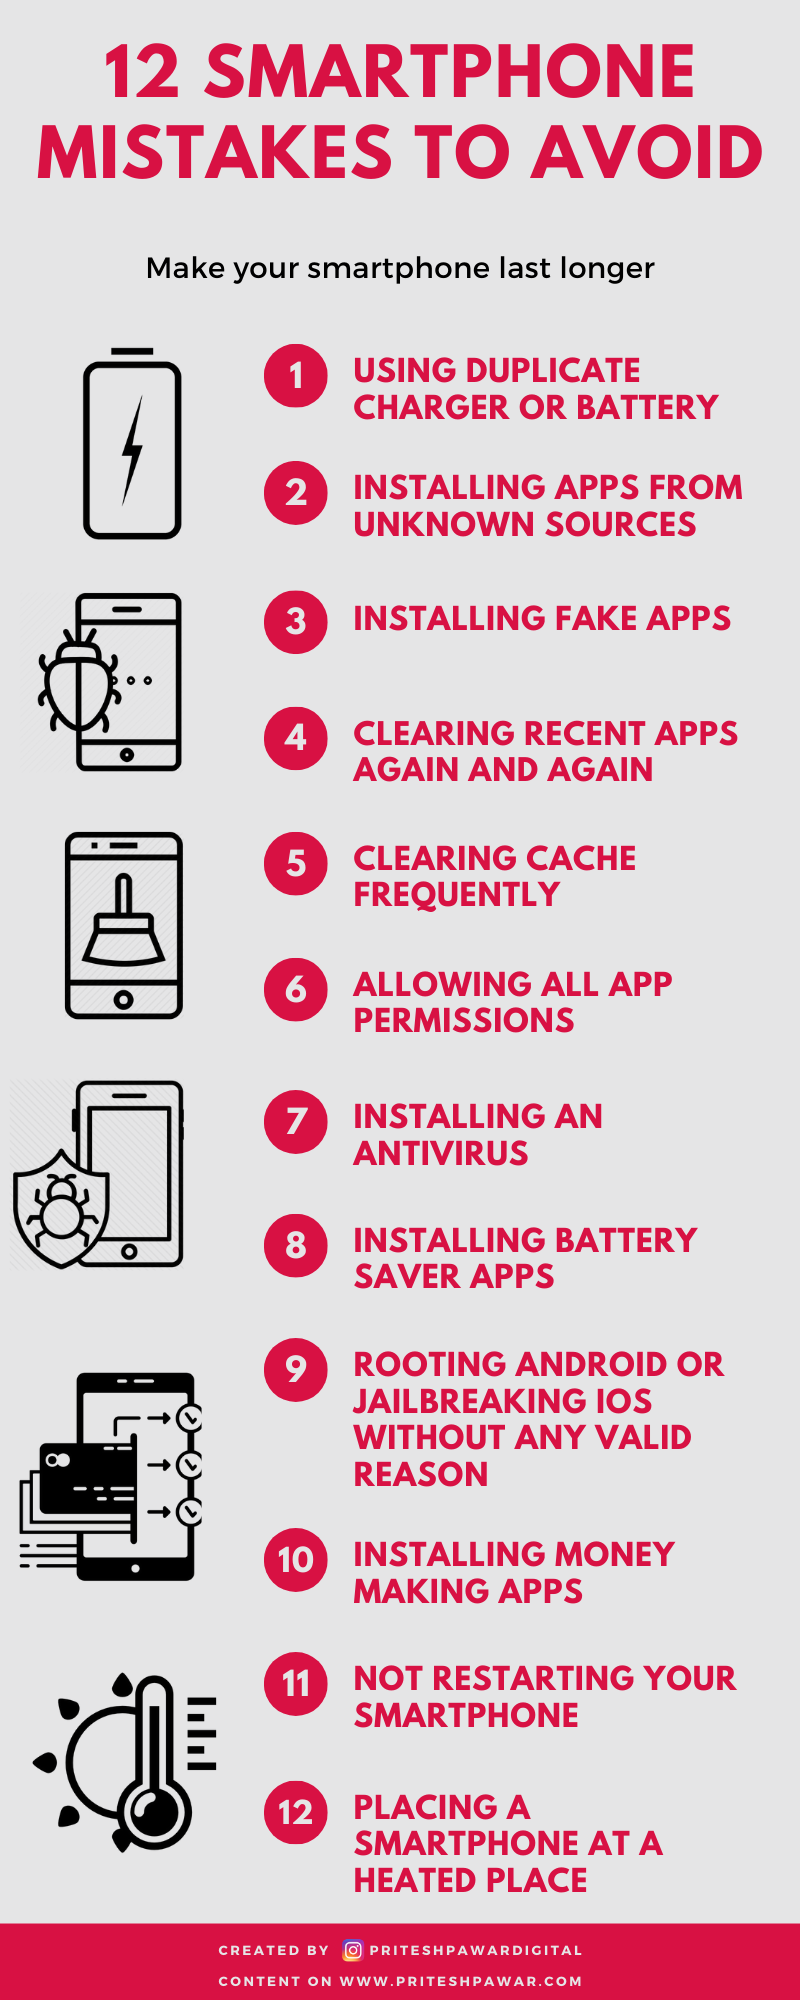 12 Mistakes To Avoid While Using A Smartphone